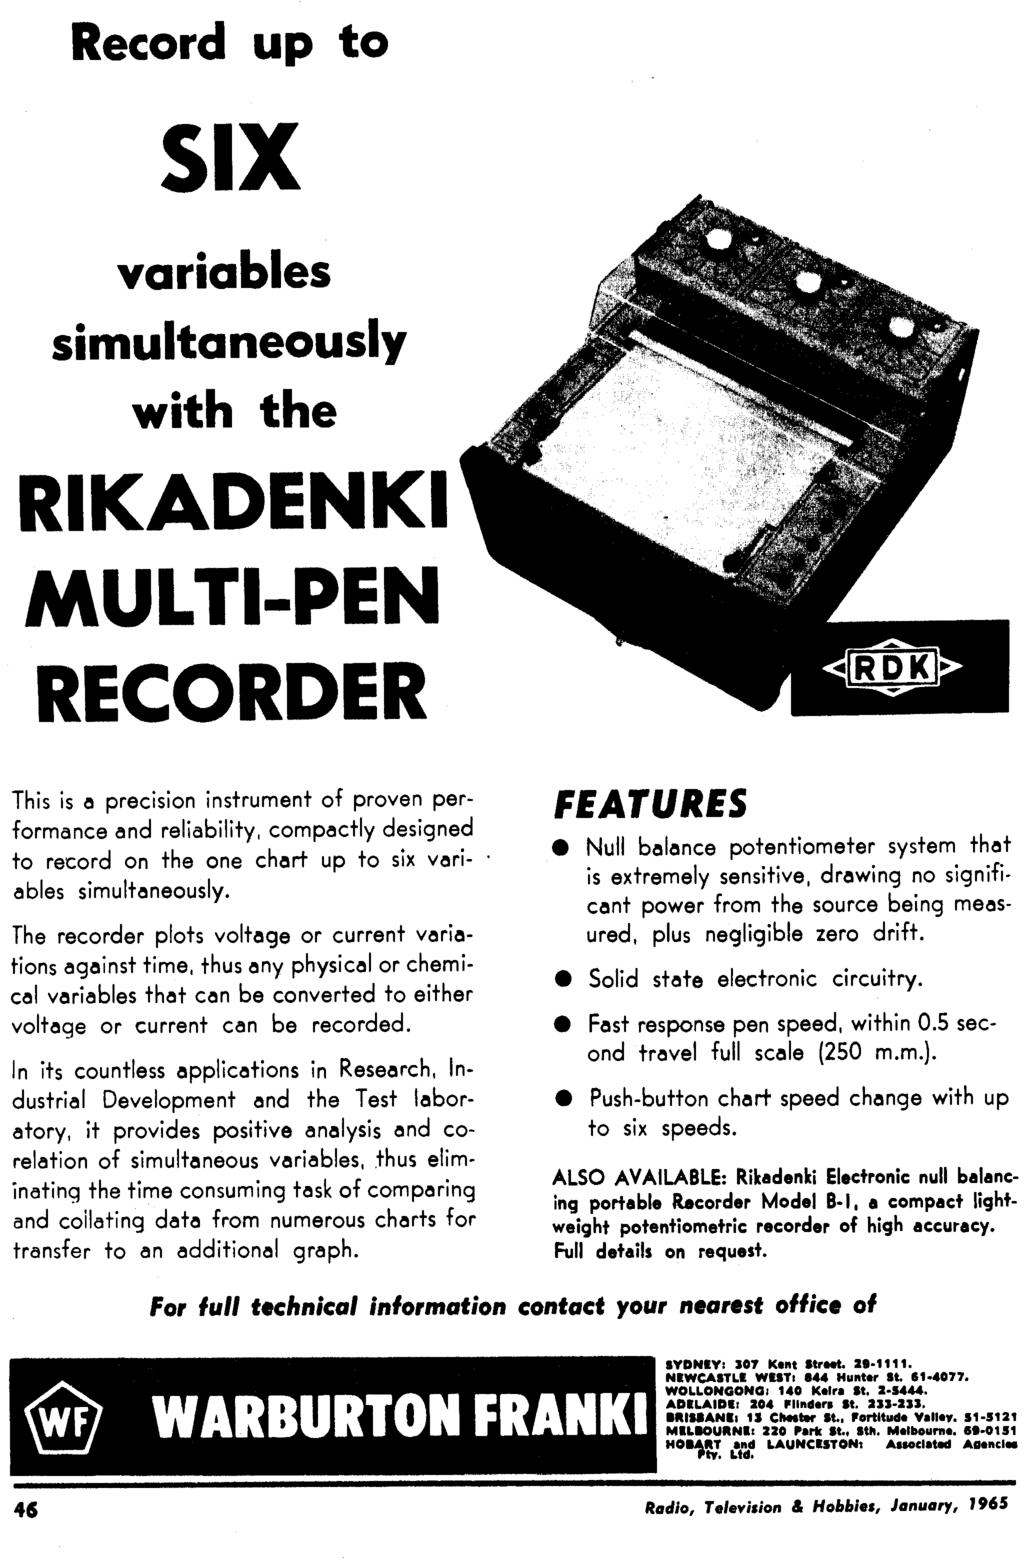 January 1965 Radio 26 Vol No 10 Television Panther 110 Rx5 Wiring Diagram Record Up To Six Variables Simultaneously With The Rikadenki Multi Pen Recorder This Is A